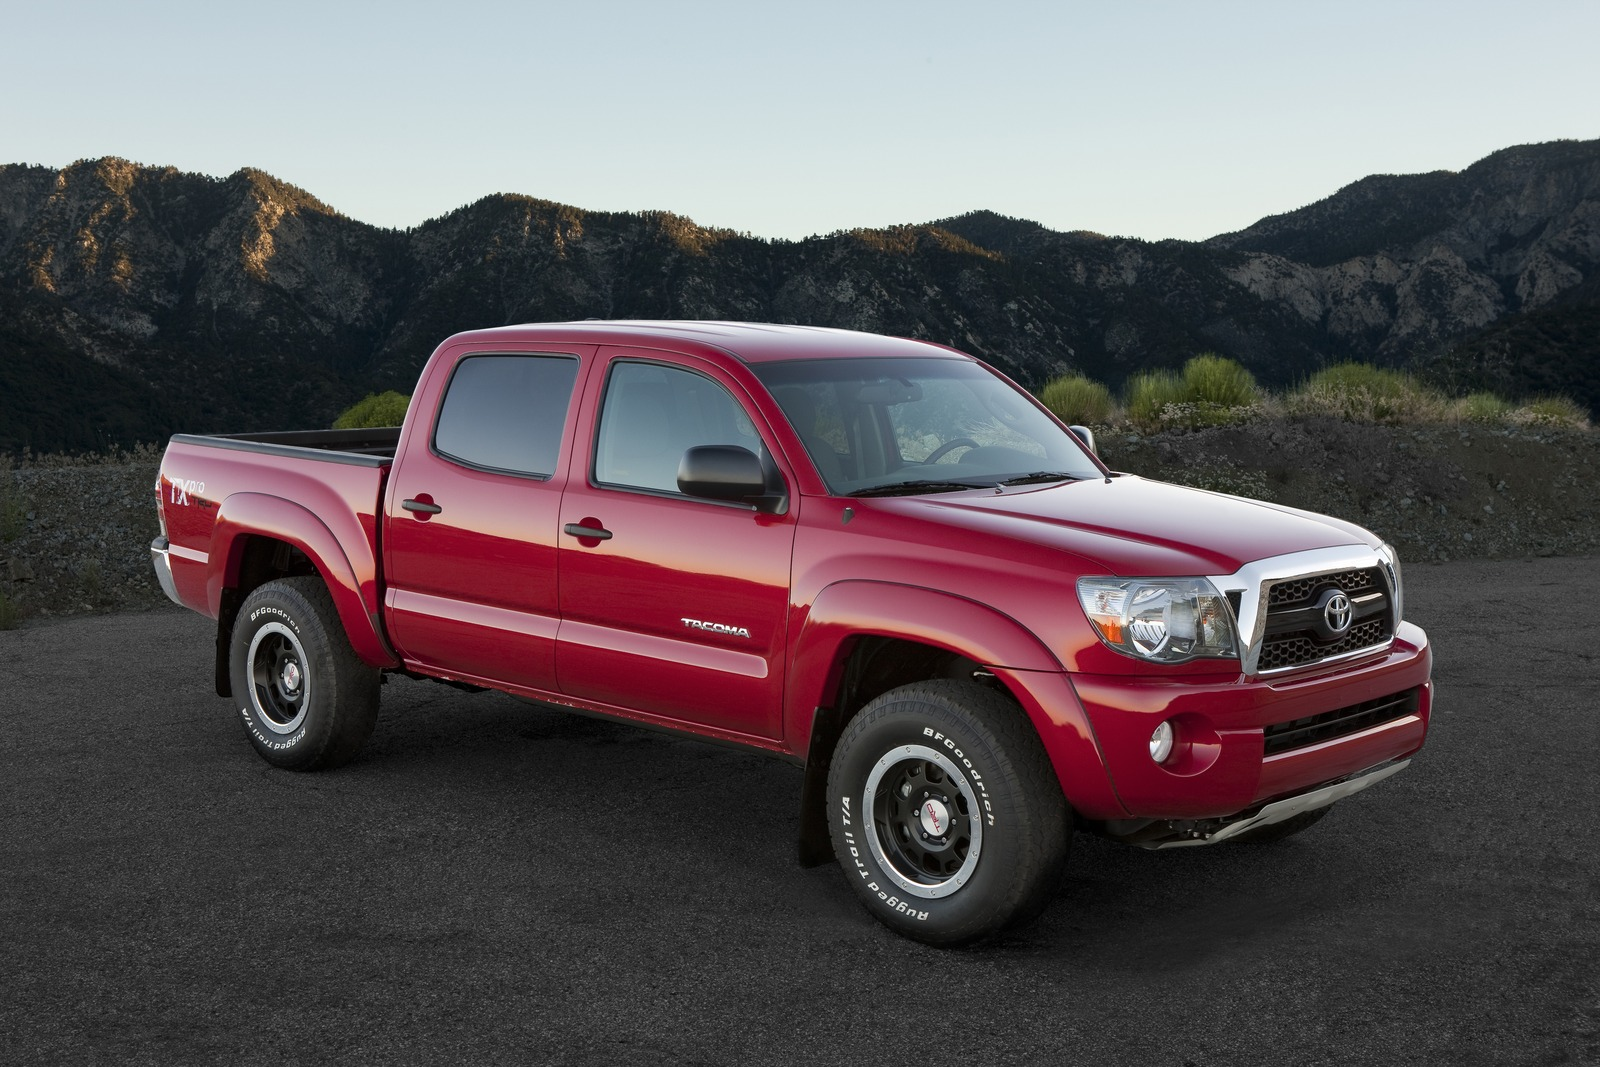 2005-2009 Toyota Tacoma Recalled For Potential Airbag Issue